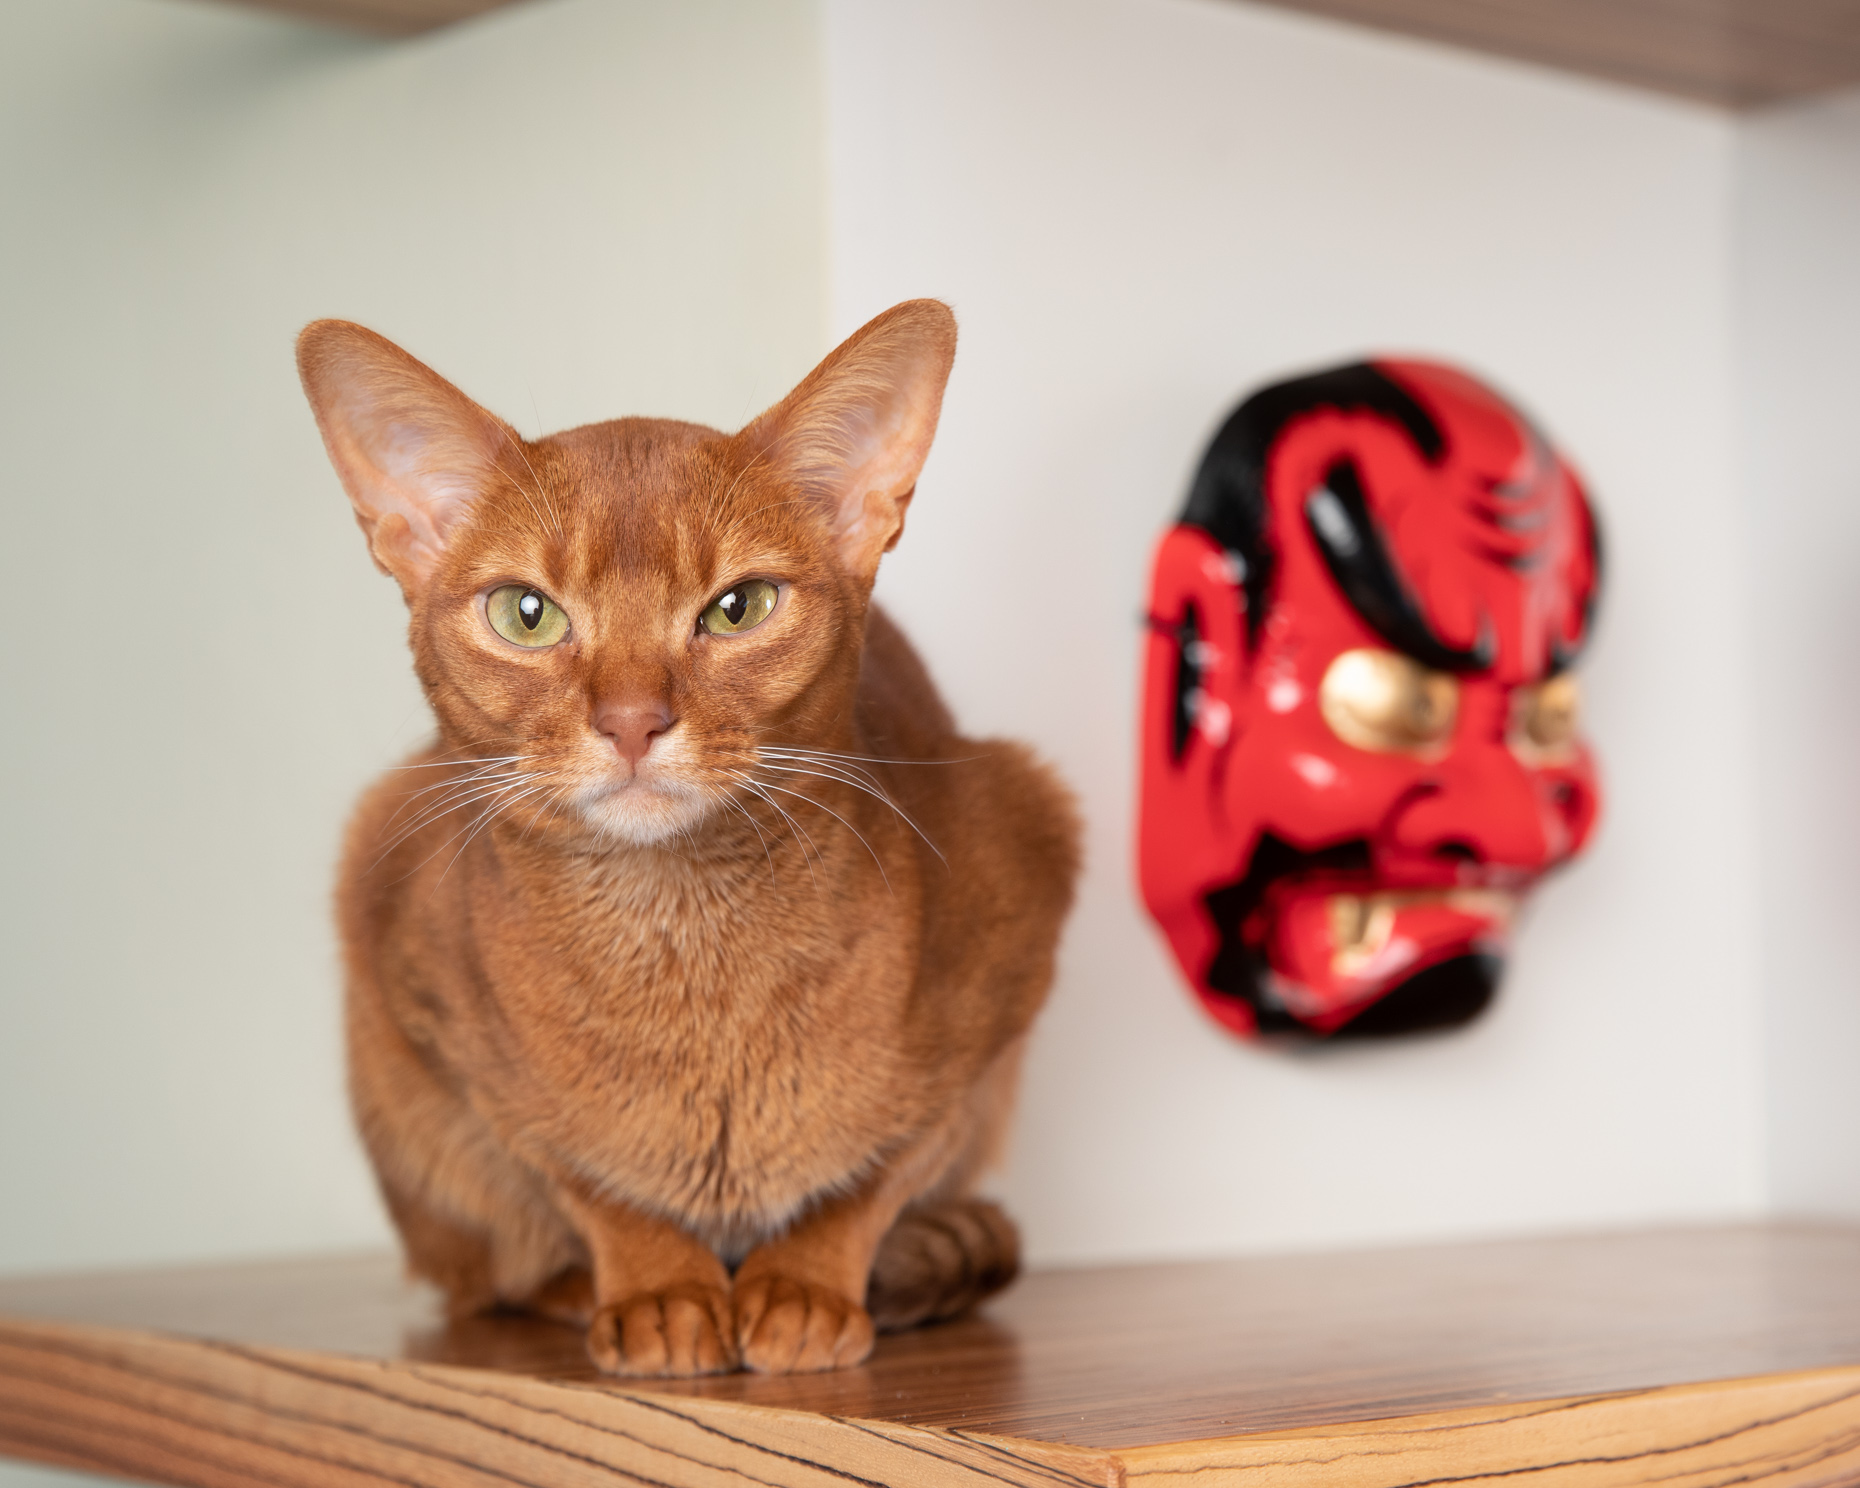 Humorous Pet Photography | Cat Next to Mask by Mark Rogers